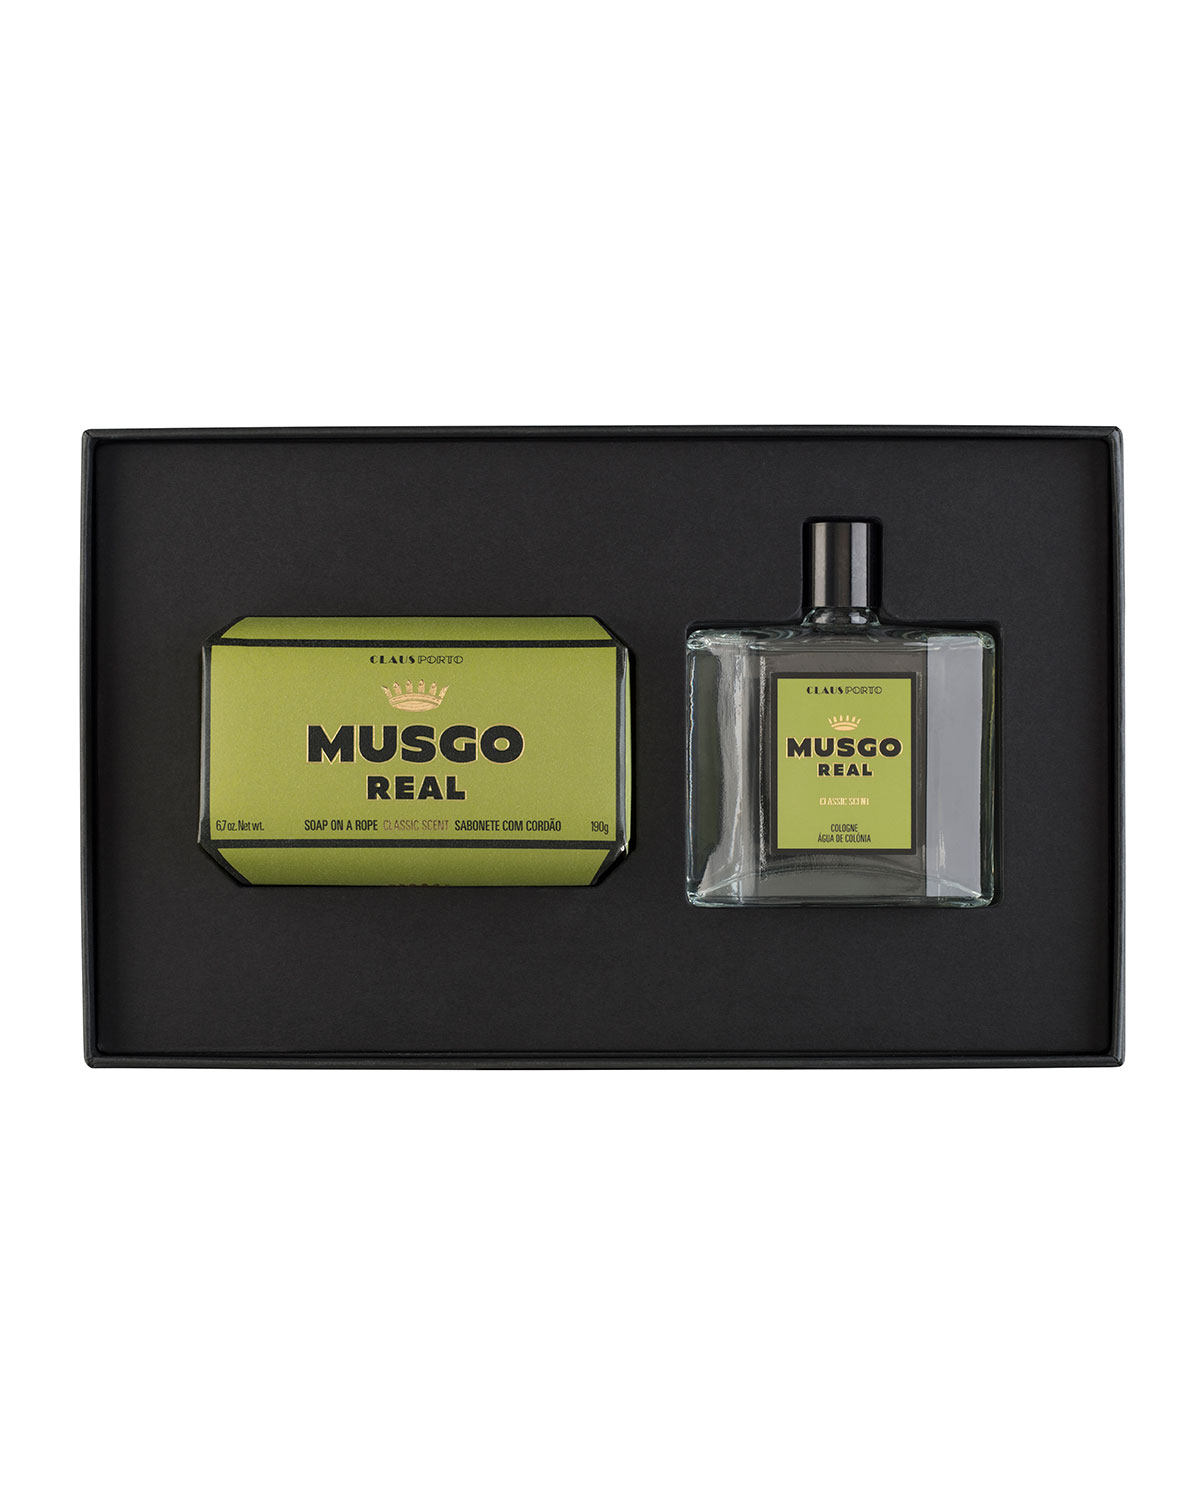 MUSGO REAL Gift Set (Soap On A Rope & Cologne) - Classic Scent